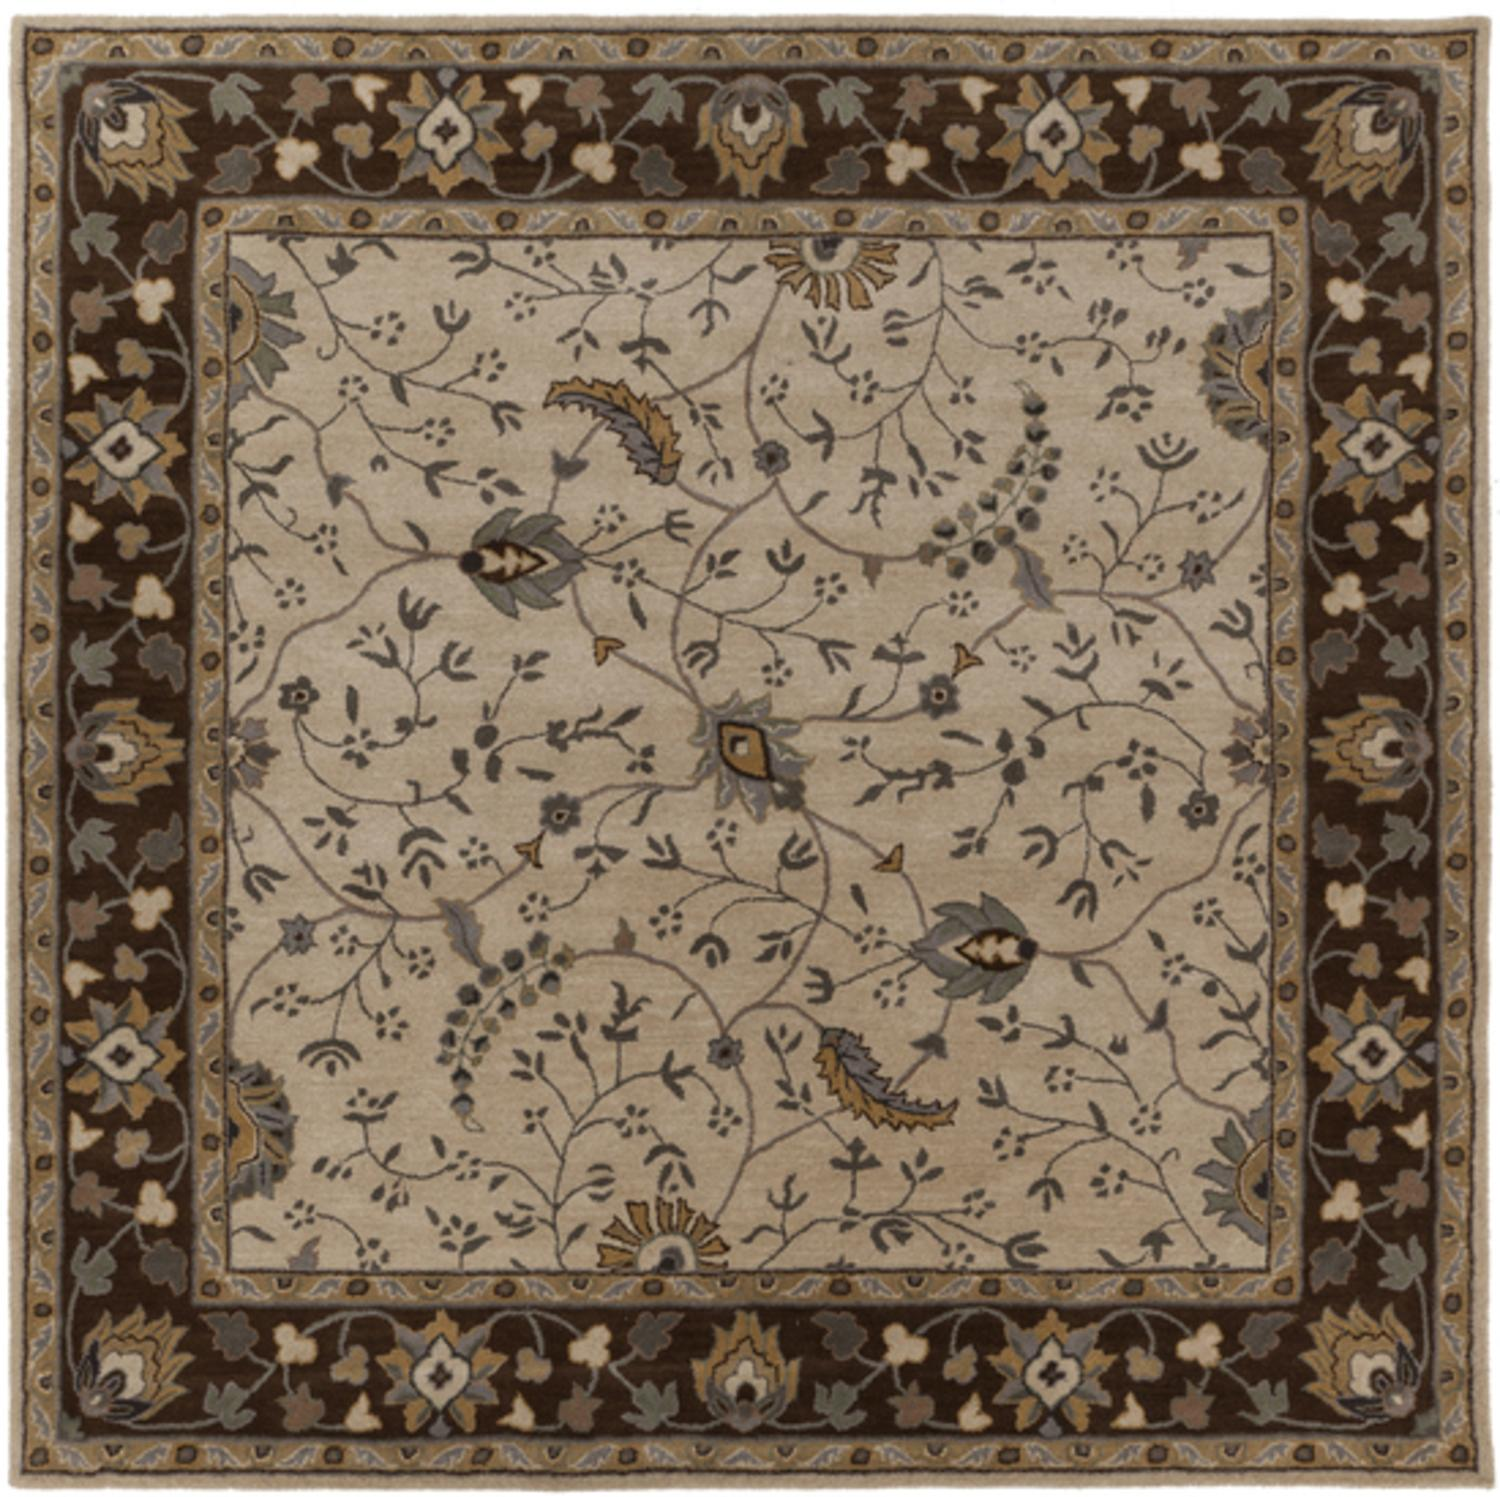 9.75' x 9.75' Theodorius Desert Sand and Brown Hand Tufted Wool Area Throw Rug